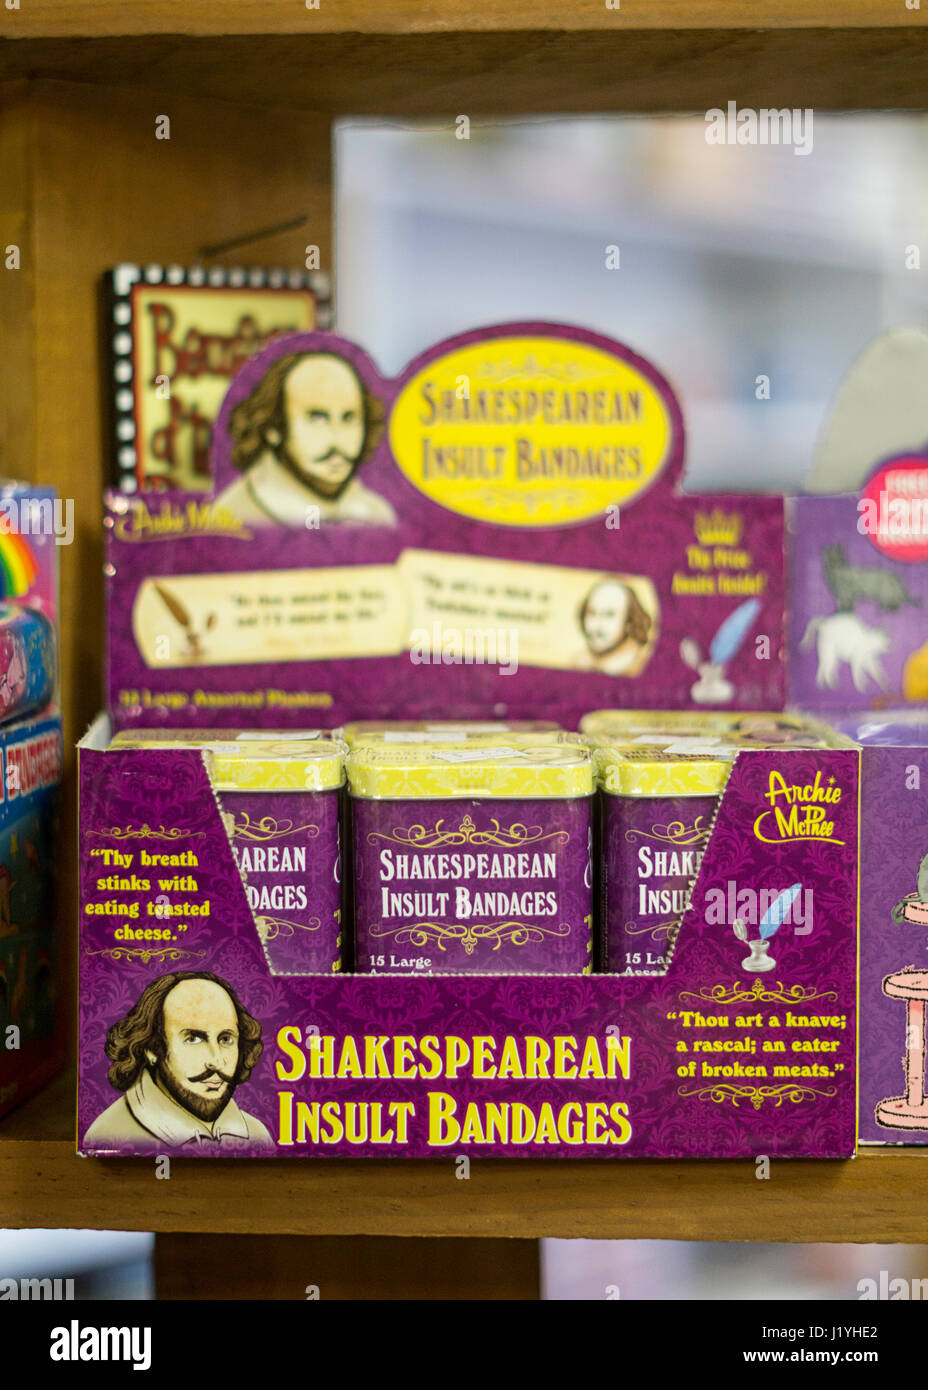 Shakespeare insult bandages for sale at the Bearskin Neck Country Store in Rockport, Massachusetts. - Stock Image